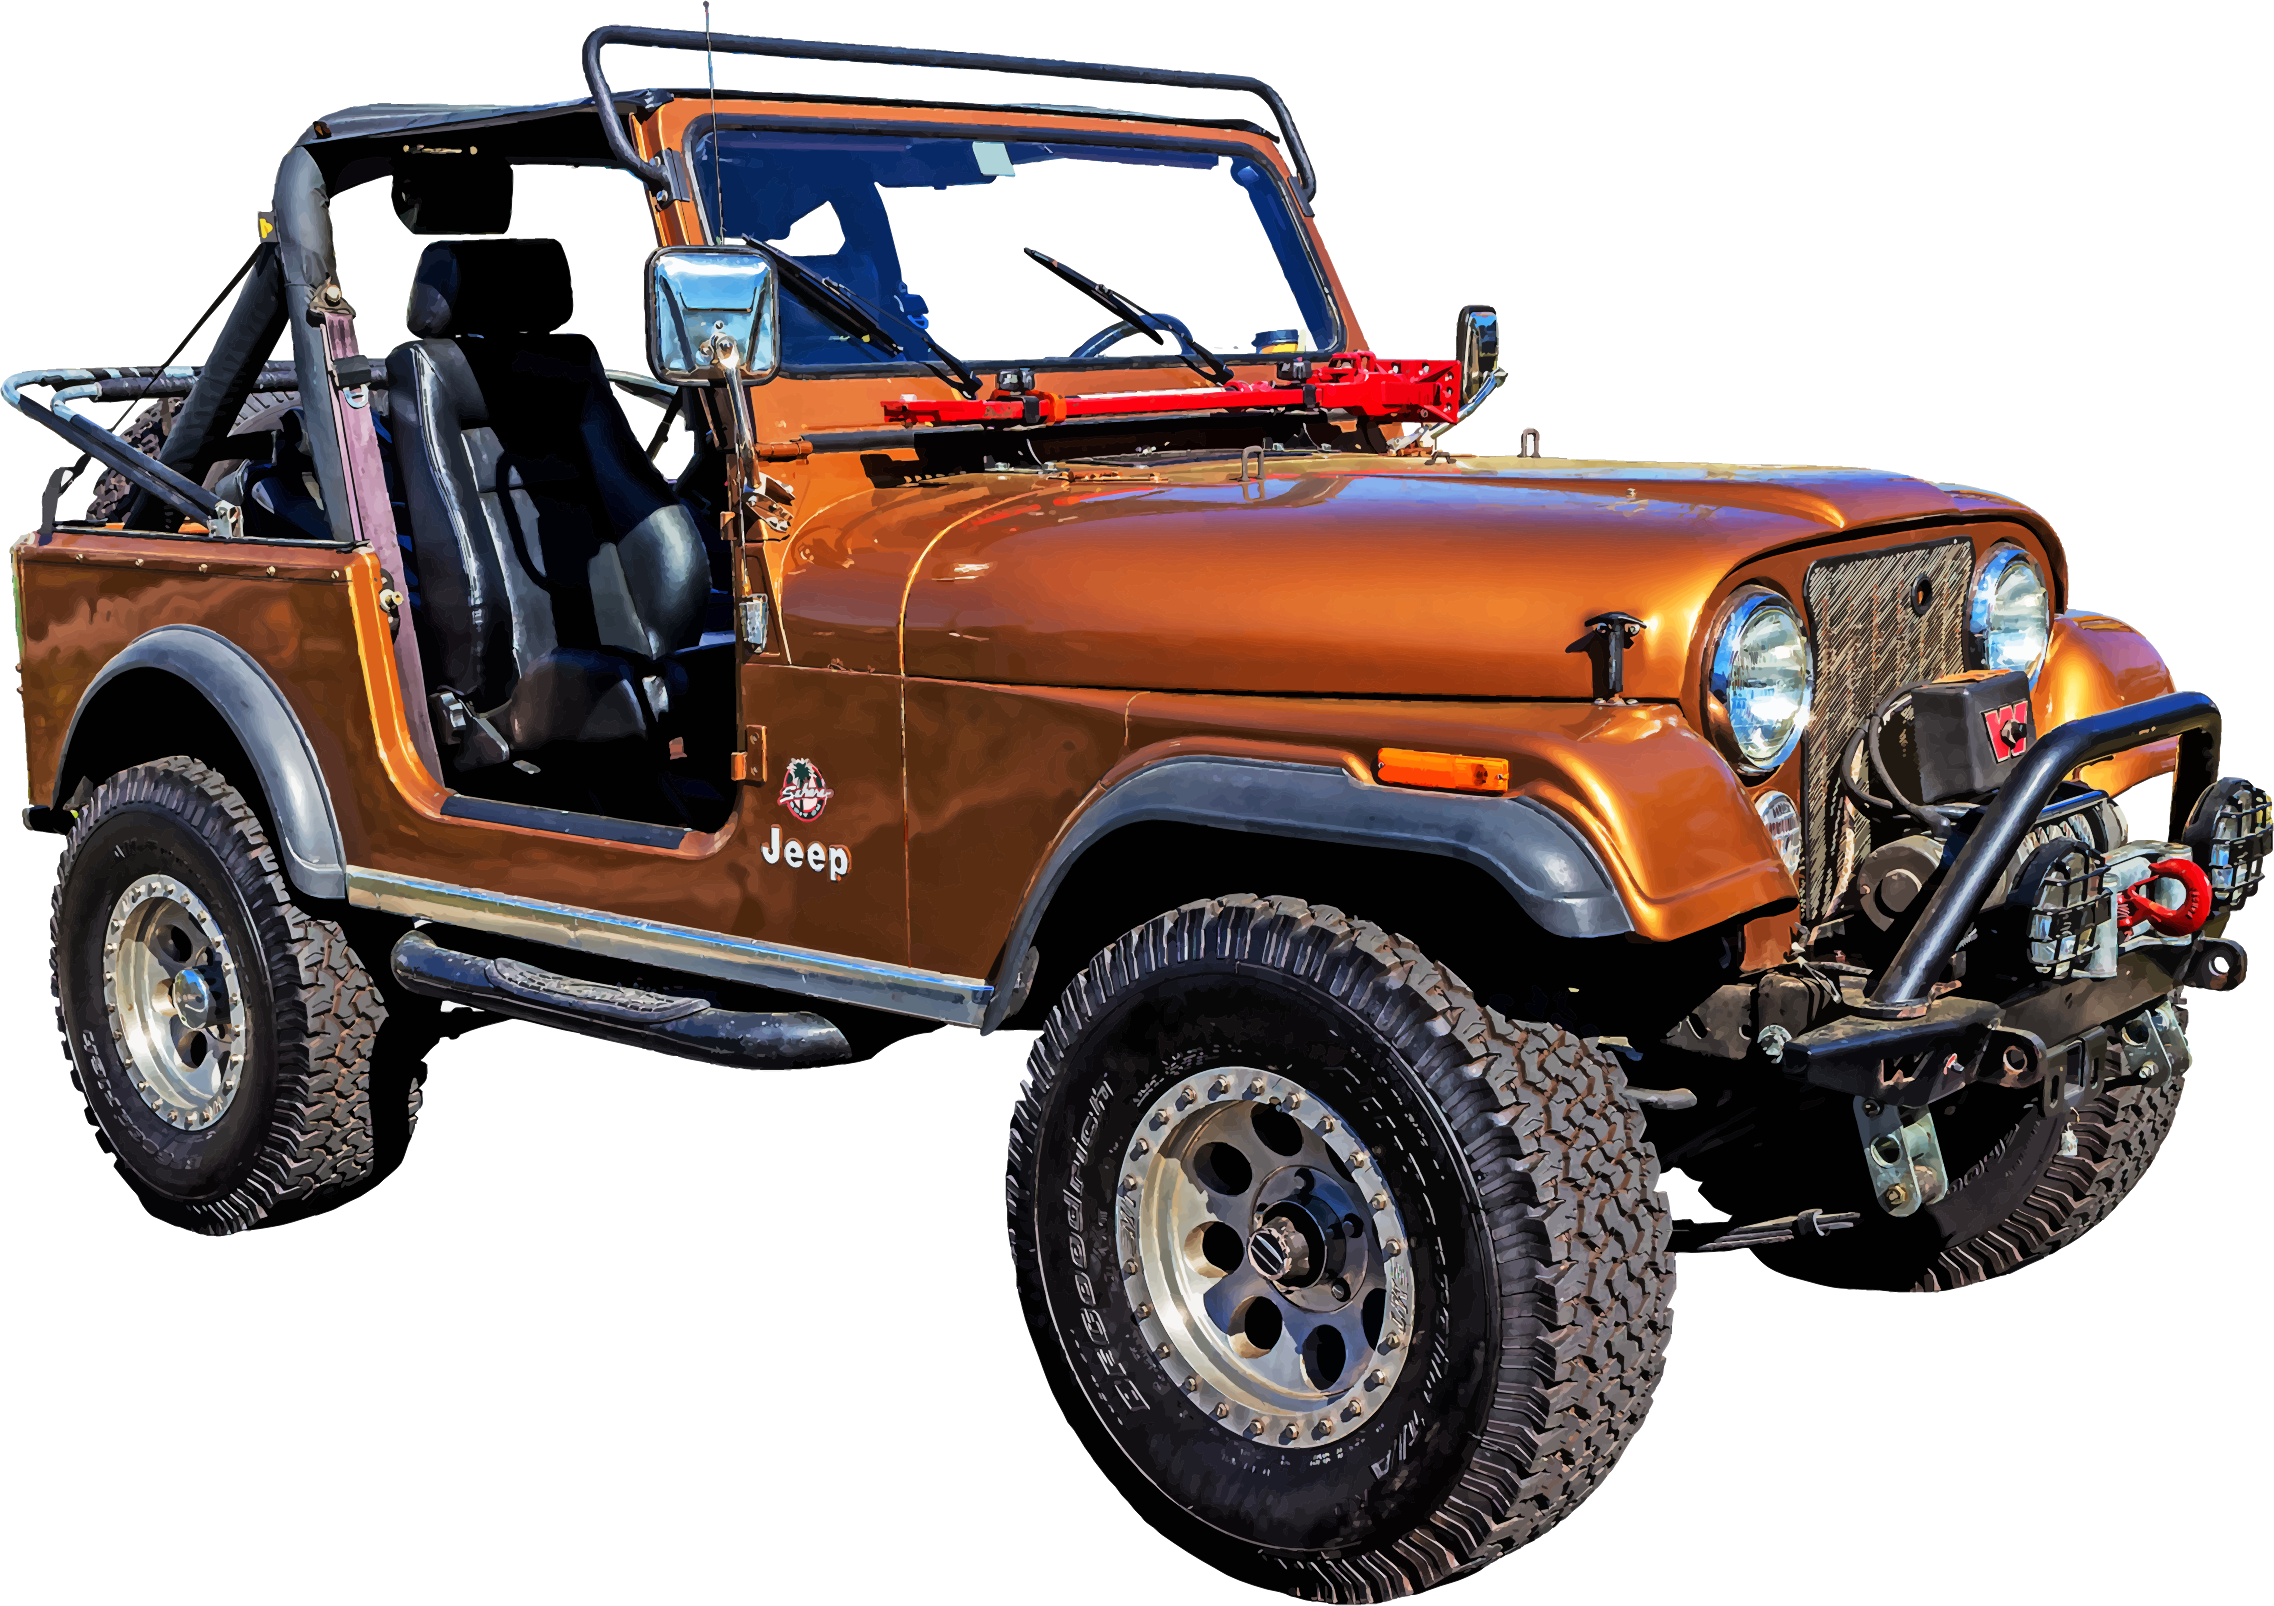 Free Clip art of Jeep Wrangler Clipart #5555 Best Red Jeep Clipart.